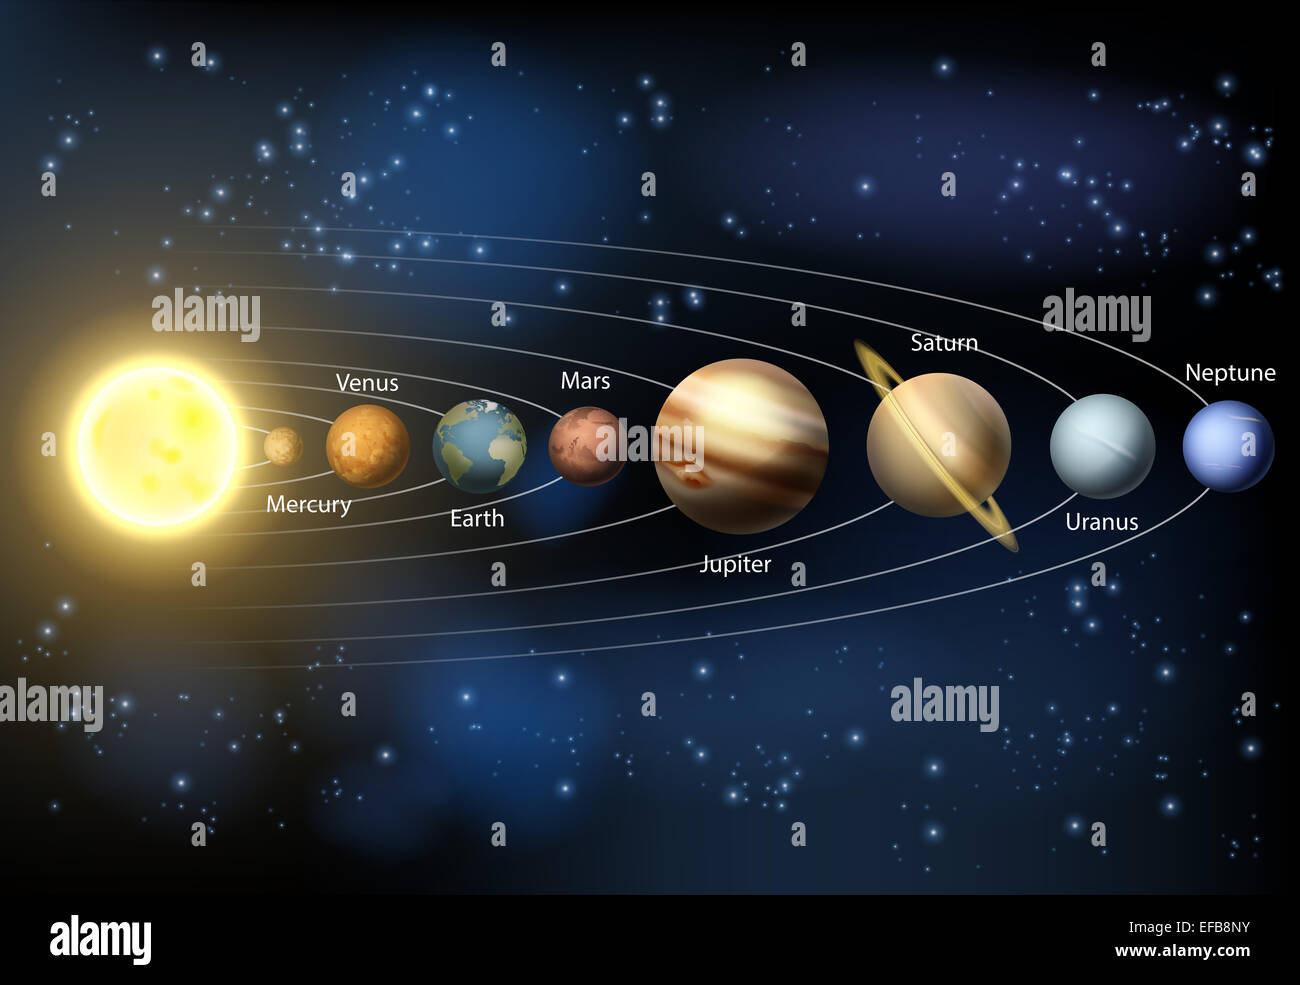 a diagram of the planets in our solar system with the planets names rh alamy com diagram of solar system to scale diagram of solar system to scale